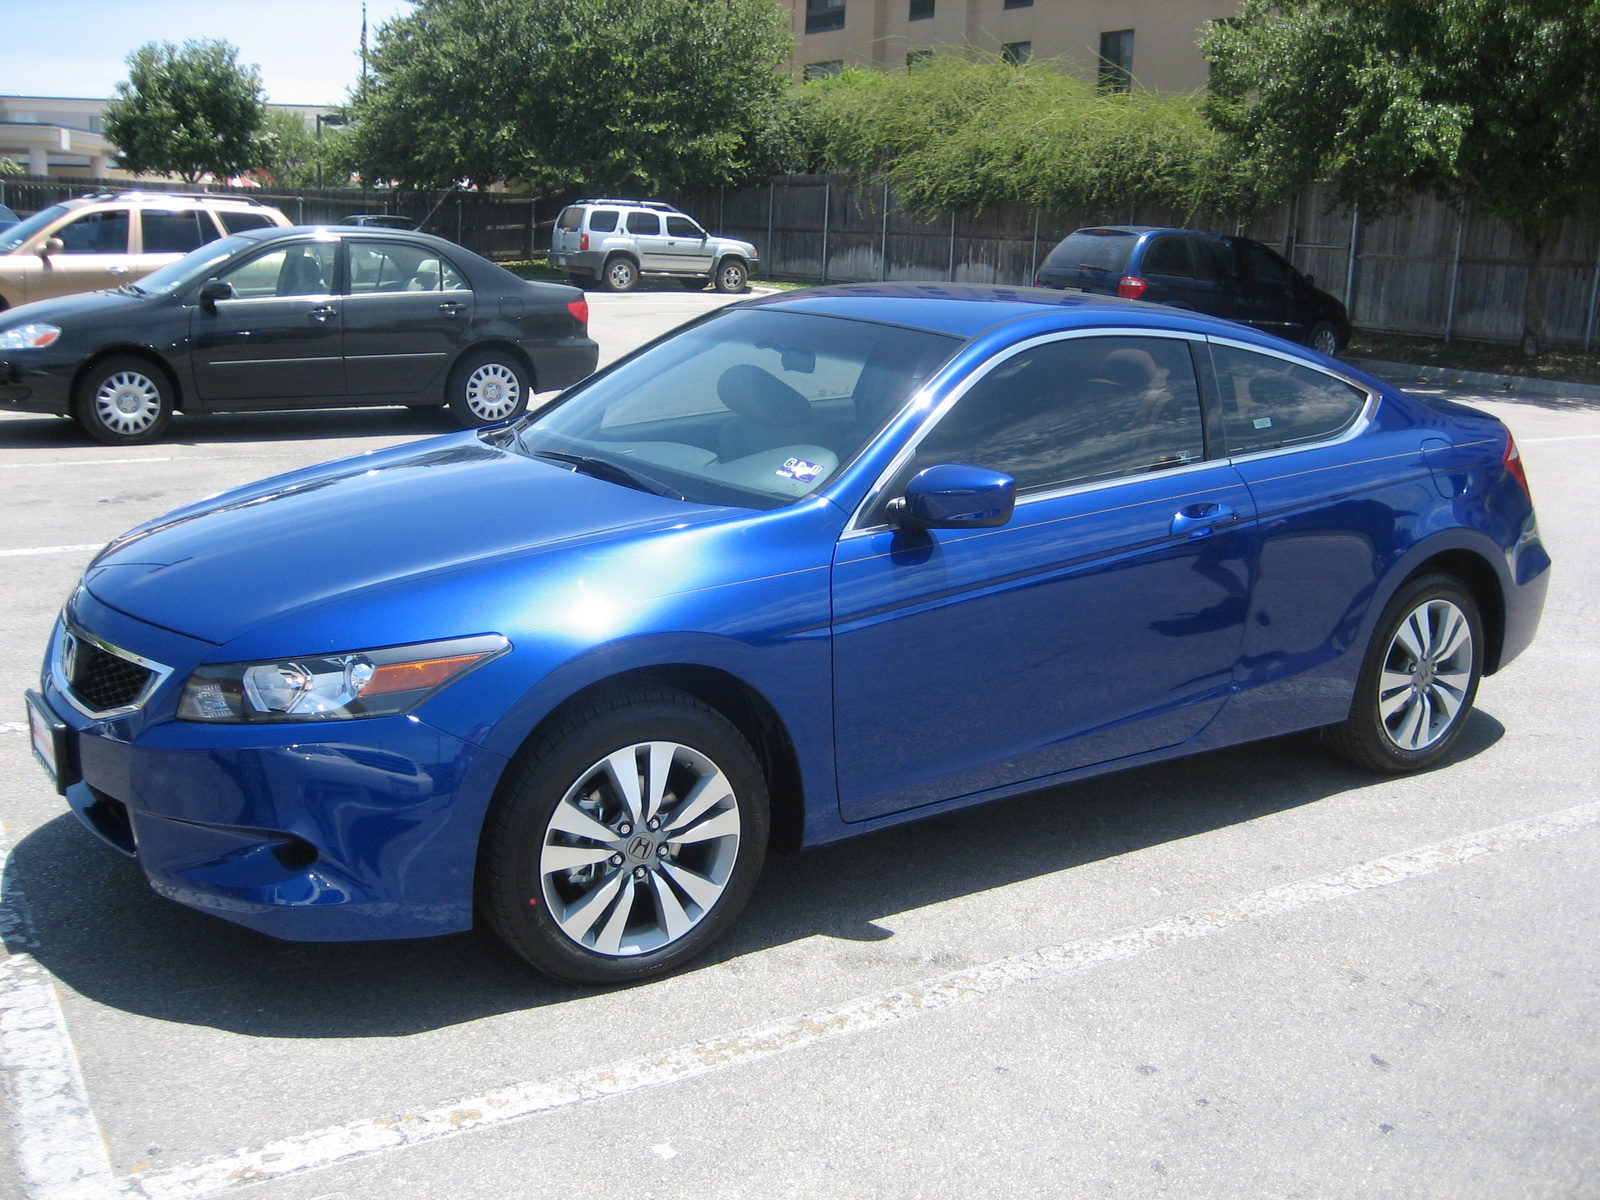 2009 honda accord coupe pictures cargurus. Black Bedroom Furniture Sets. Home Design Ideas